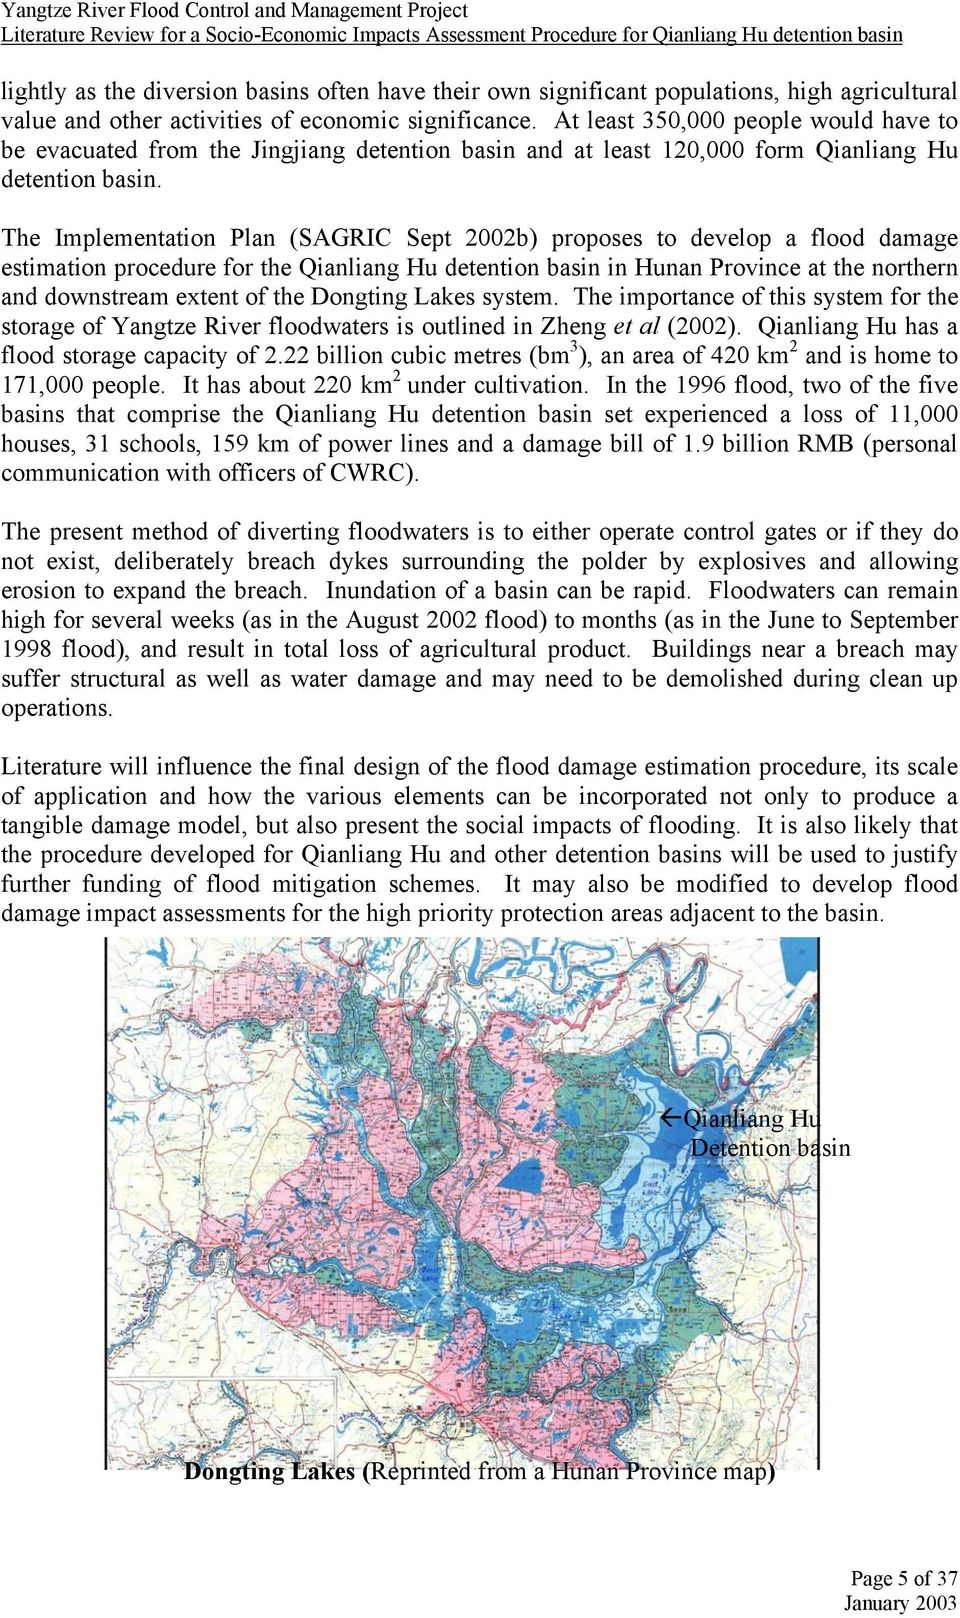 The Implementation Plan (SAGRIC Sept 2002b) proposes to develop a flood damage estimation procedure for the Qianliang Hu detention basin in Hunan Province at the northern and downstream extent of the